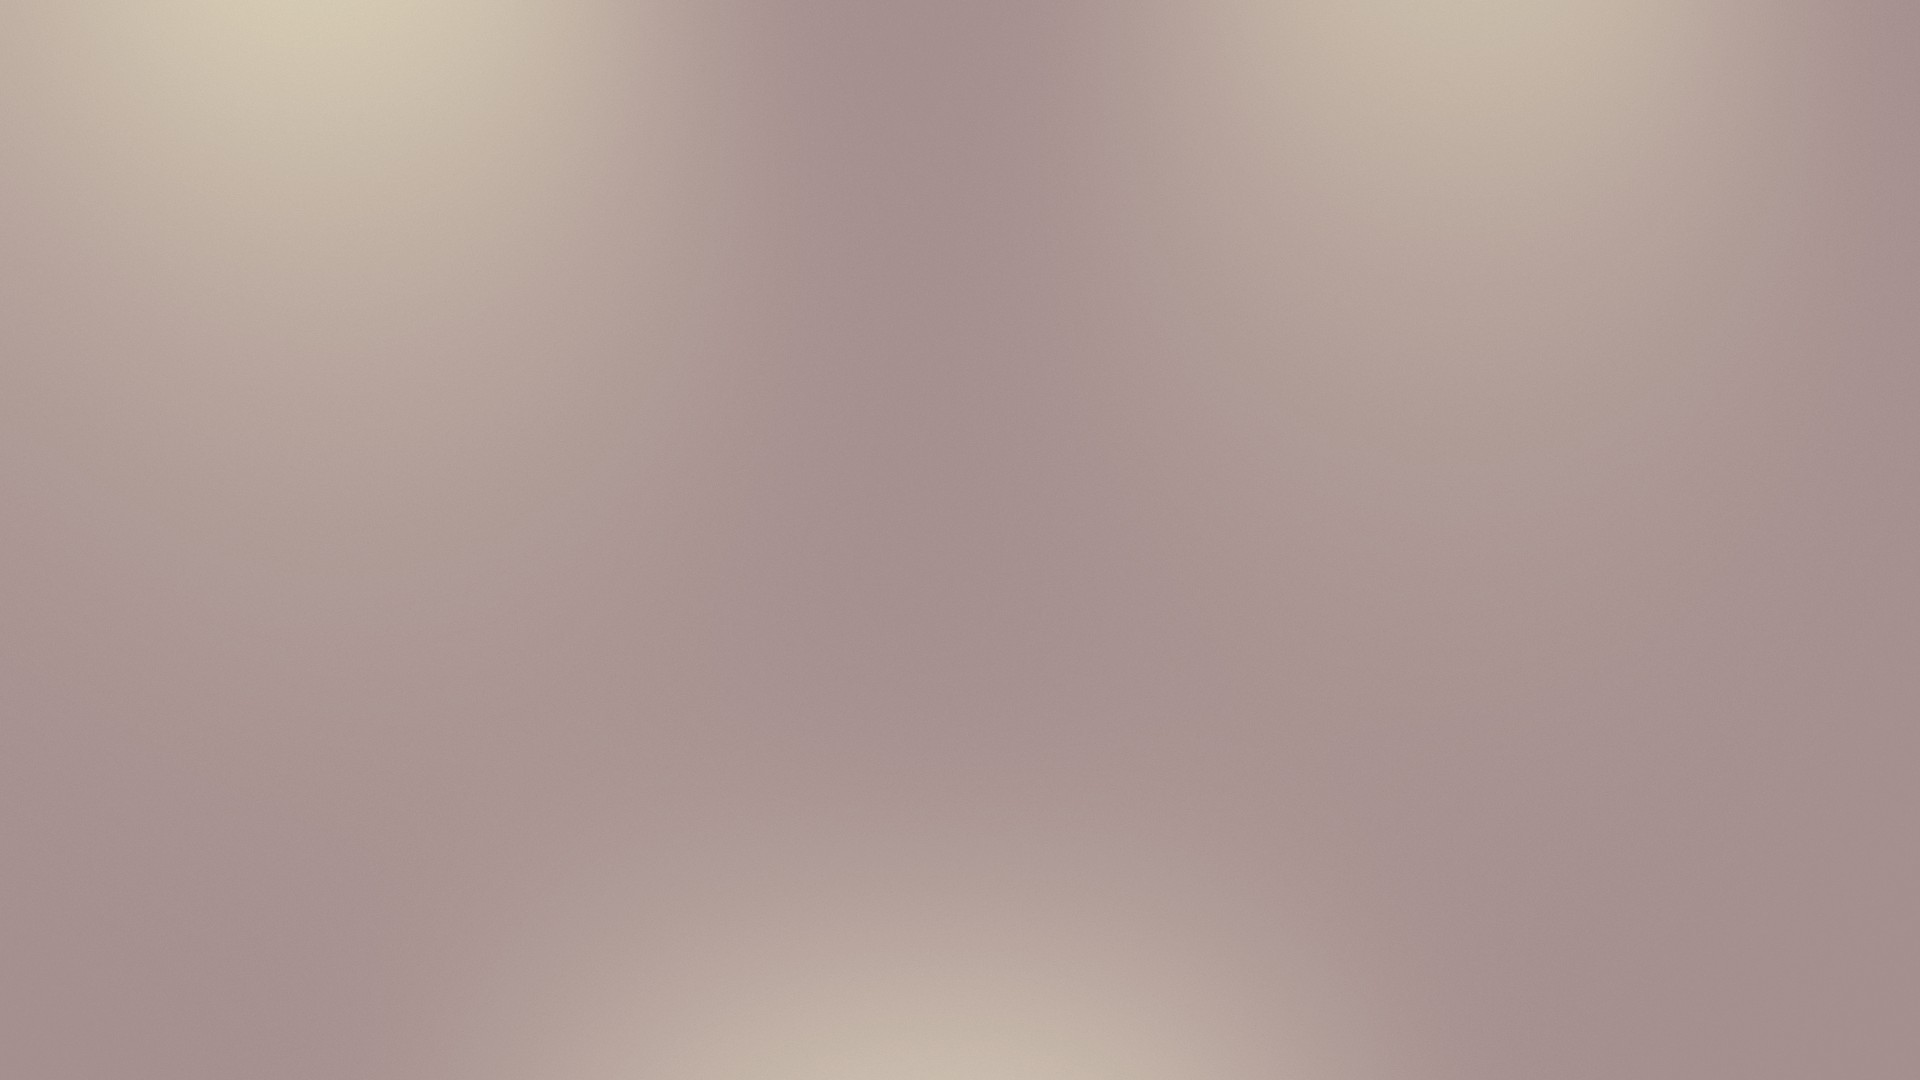 SUBMIT YOUR URL TO BAIDU AND 4 OTHER TOP CHINESE SEARCH ENGINES